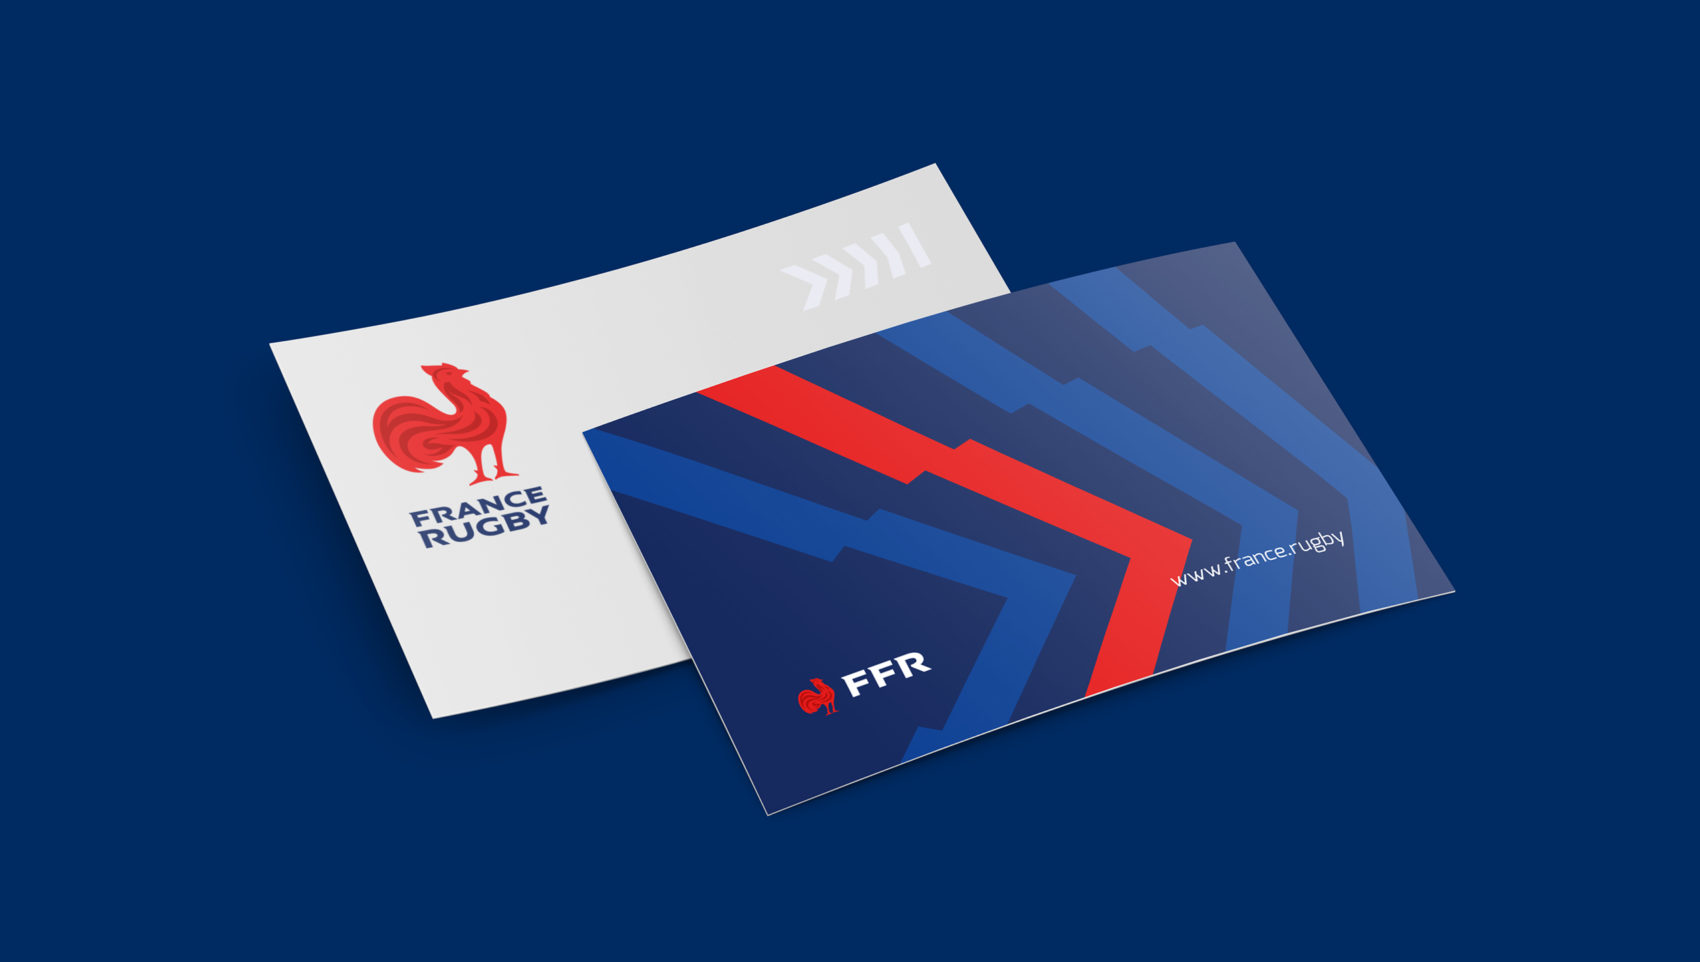 Projet_project_leroy_tremblot_FFR_federation_francaise_rugby_french_nouvelle_identite_new_identity_charte_03bis